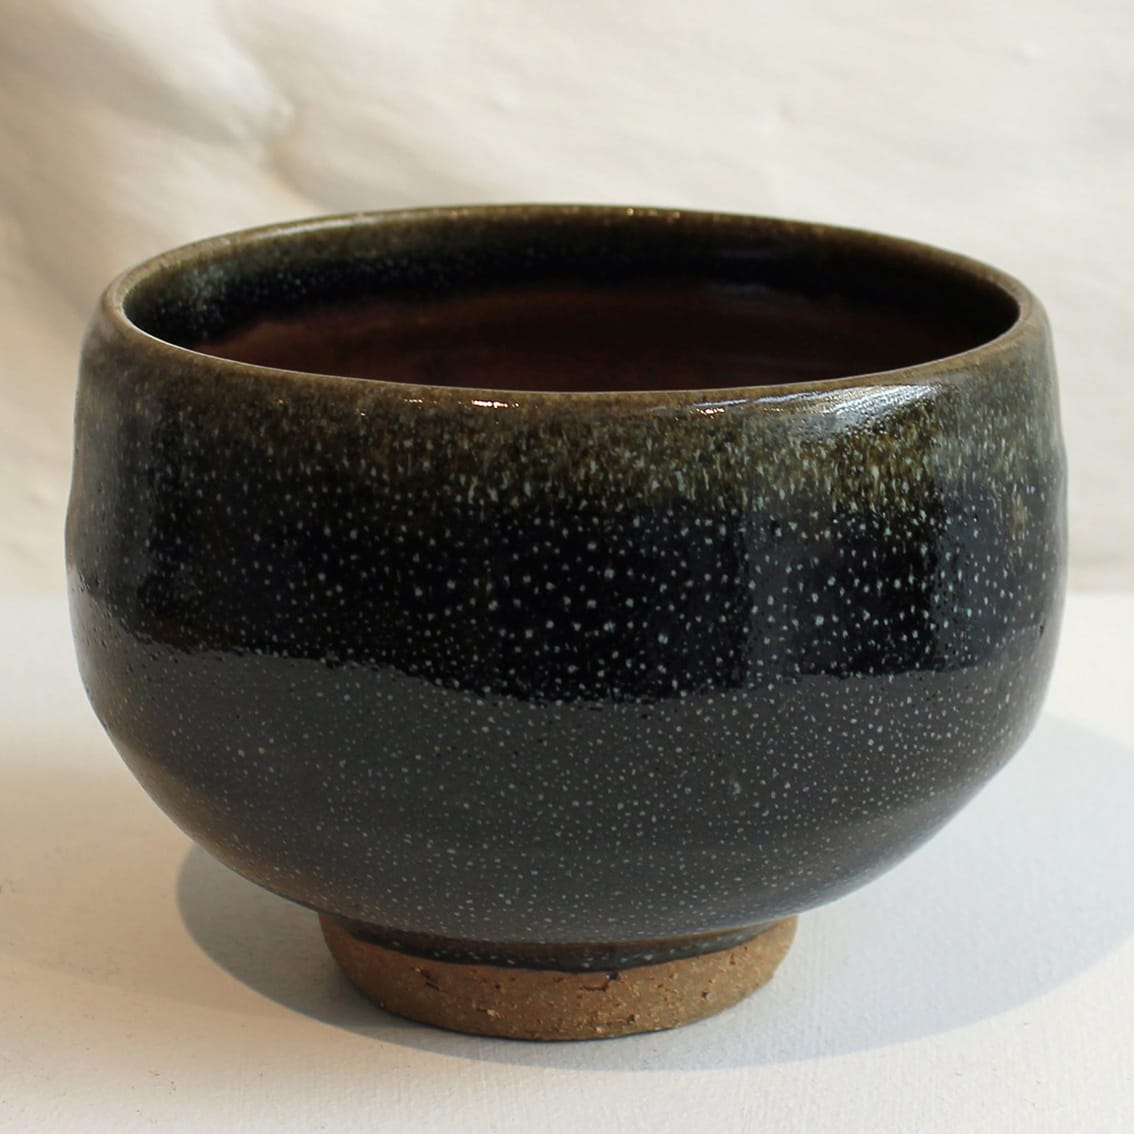 """<span class=""""link fancybox-details-link""""><a href=""""/artists/200-matthew-tyas/works/5451-matthew-tyas-starling-chawan-bowl-2018/"""">View Detail Page</a></span><div class=""""artist""""><strong>Matthew Tyas</strong></div> <div class=""""title""""><em>Starling Chawan Bowl</em>, 2018</div> <div class=""""signed_and_dated"""">stamped by the artist</div> <div class=""""medium"""">glazed thrown stoneware</div><div class=""""copyright_line"""">Copyright The Artist</div>"""